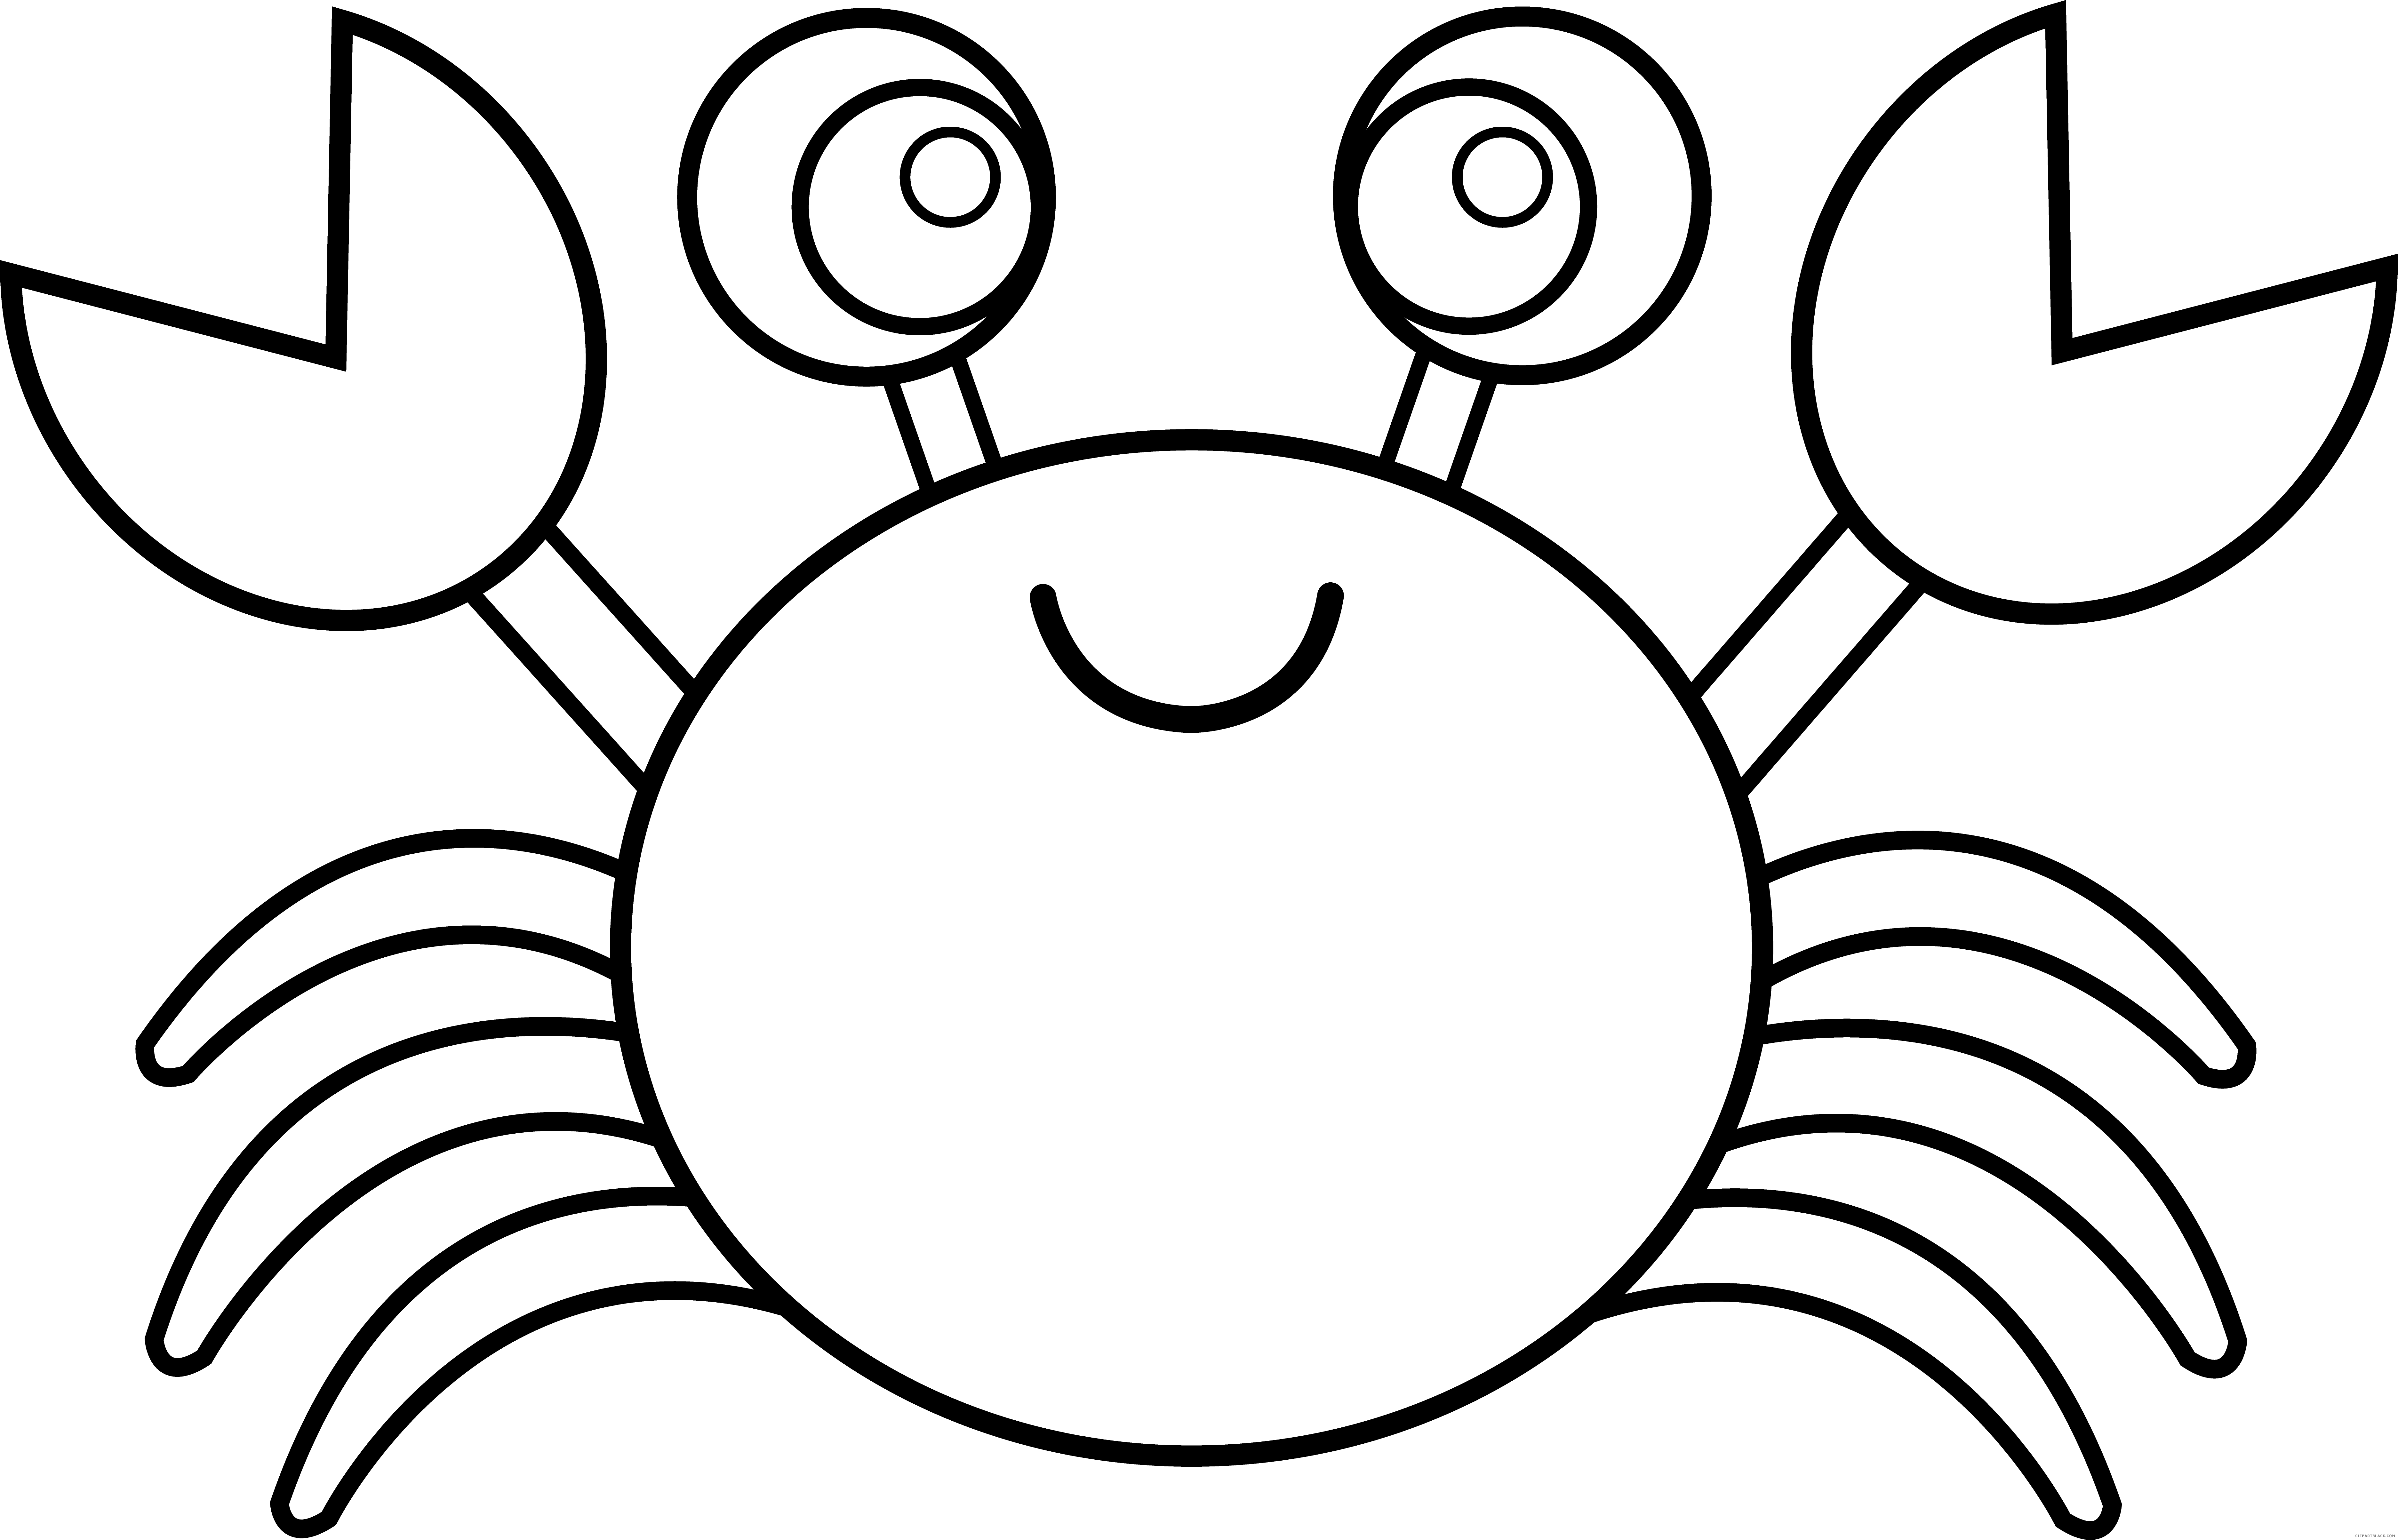 Crab page of clipartblack. Crabs clipart black and white